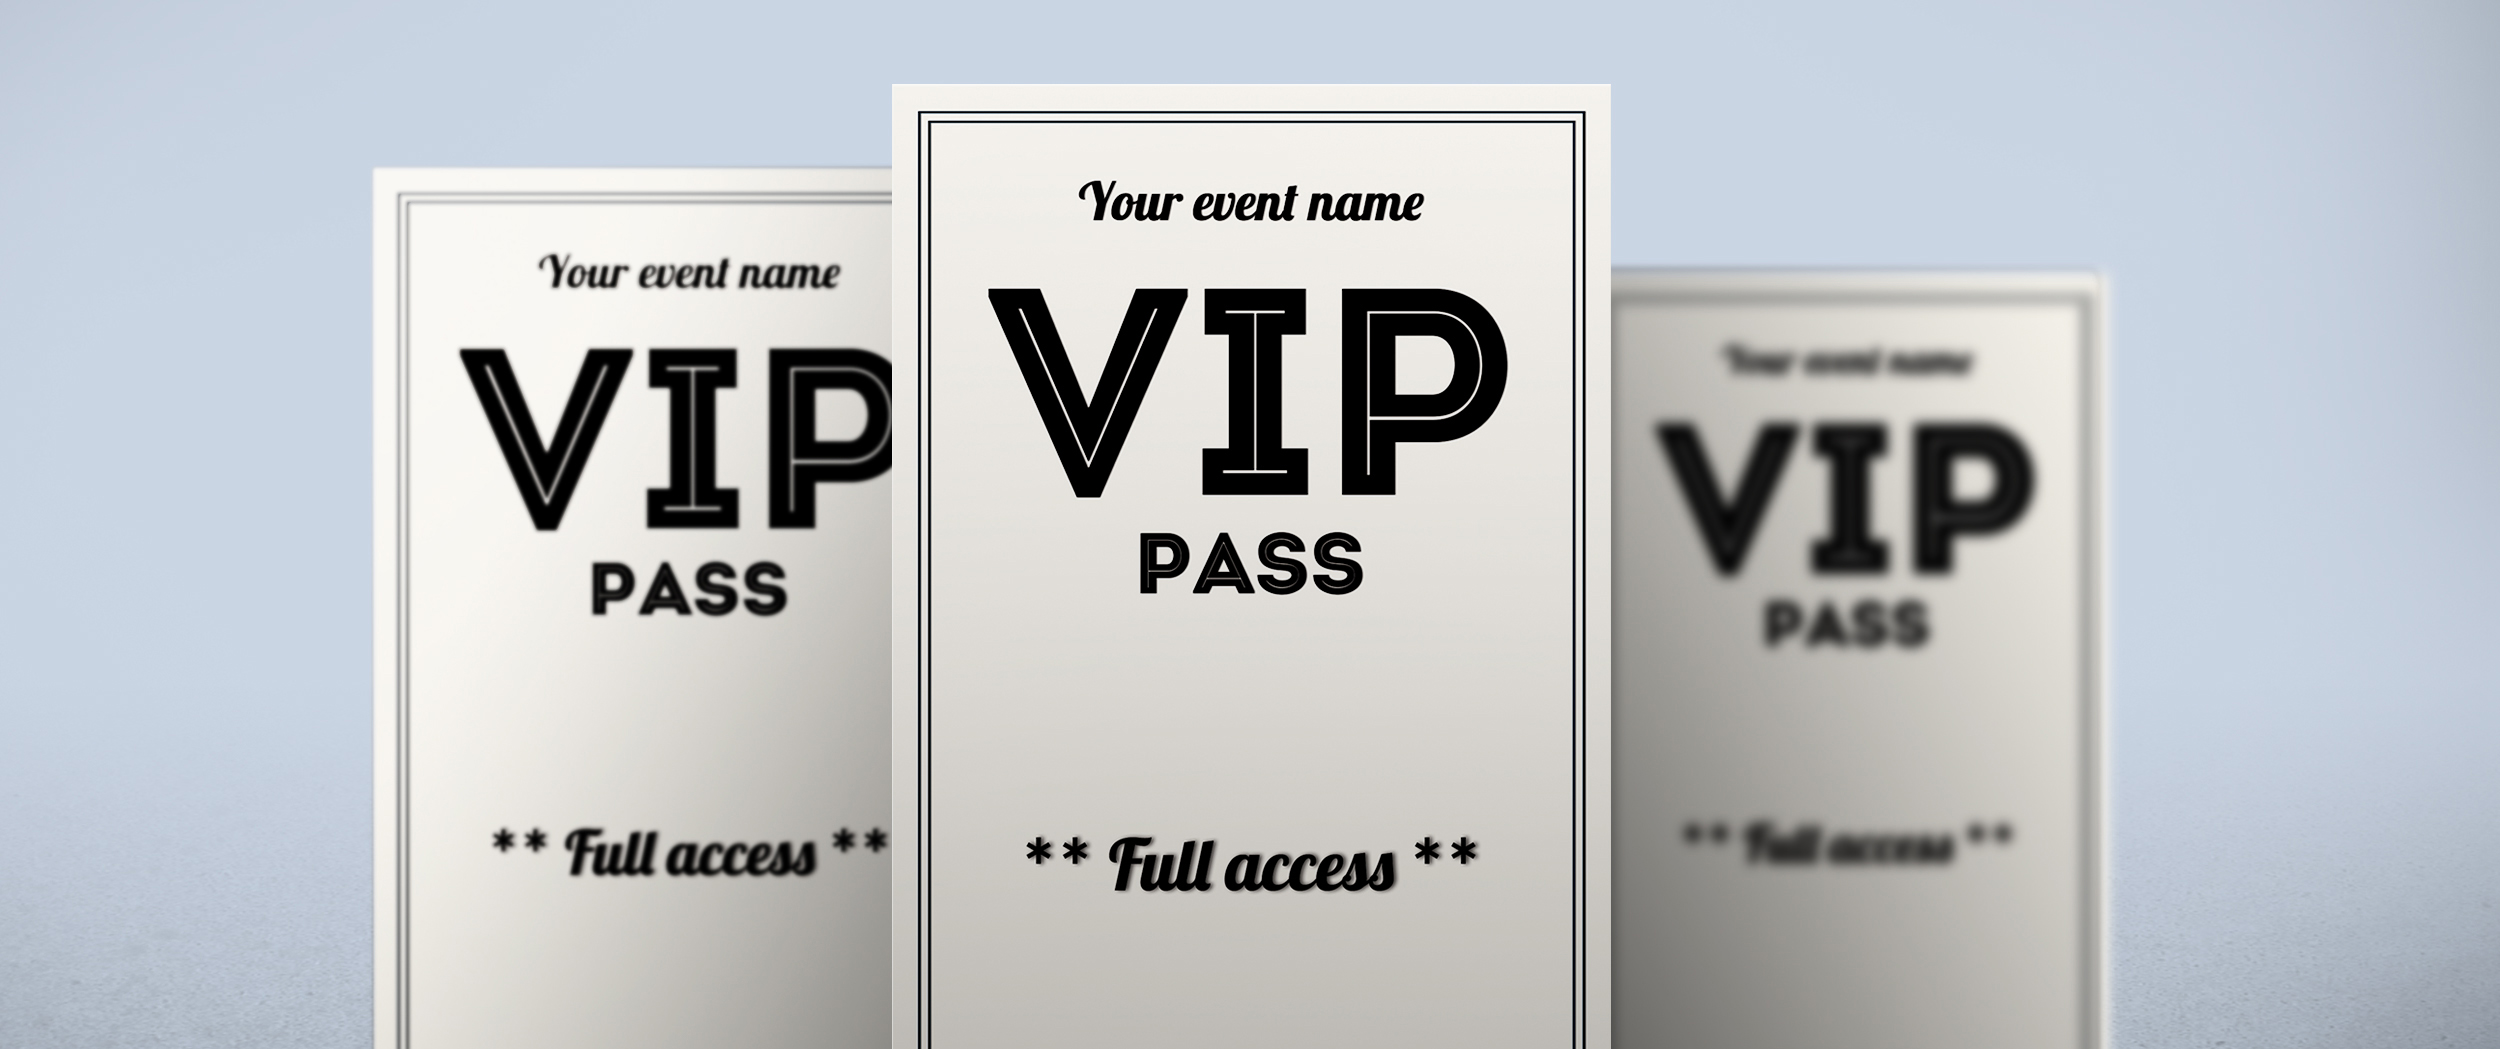 vip pass youparti special event open bar milano